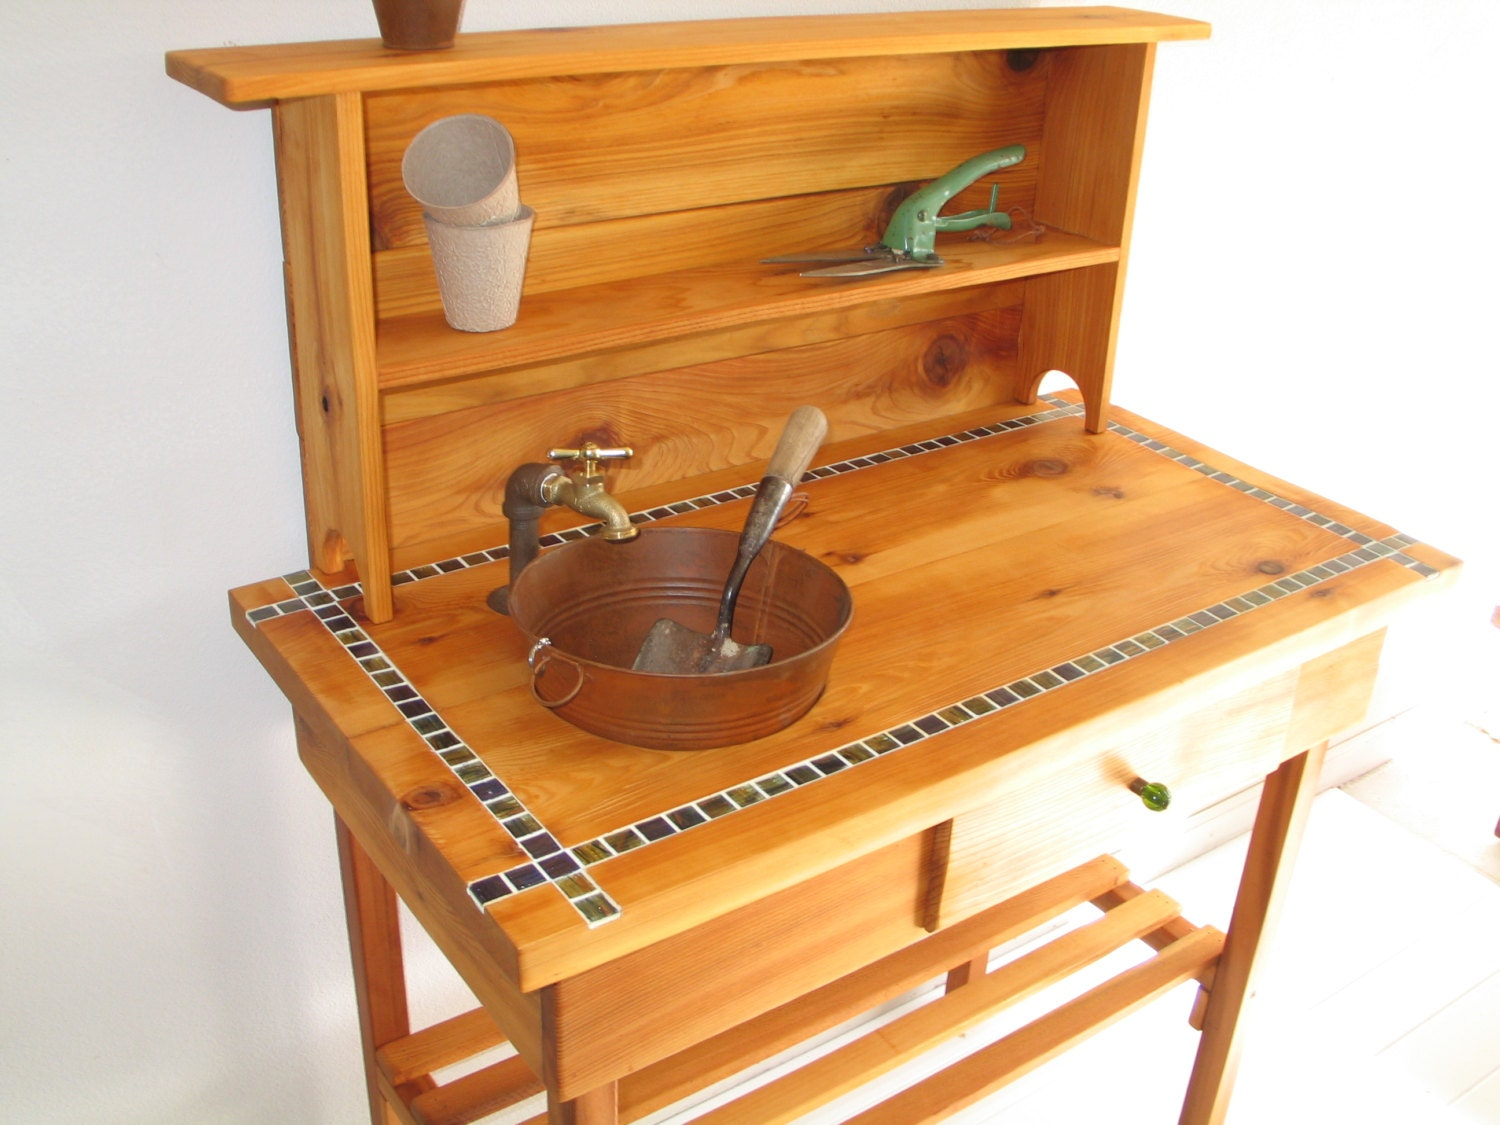 Custom Potting Bench For Jim Faucet Sink Shelf And Drawer